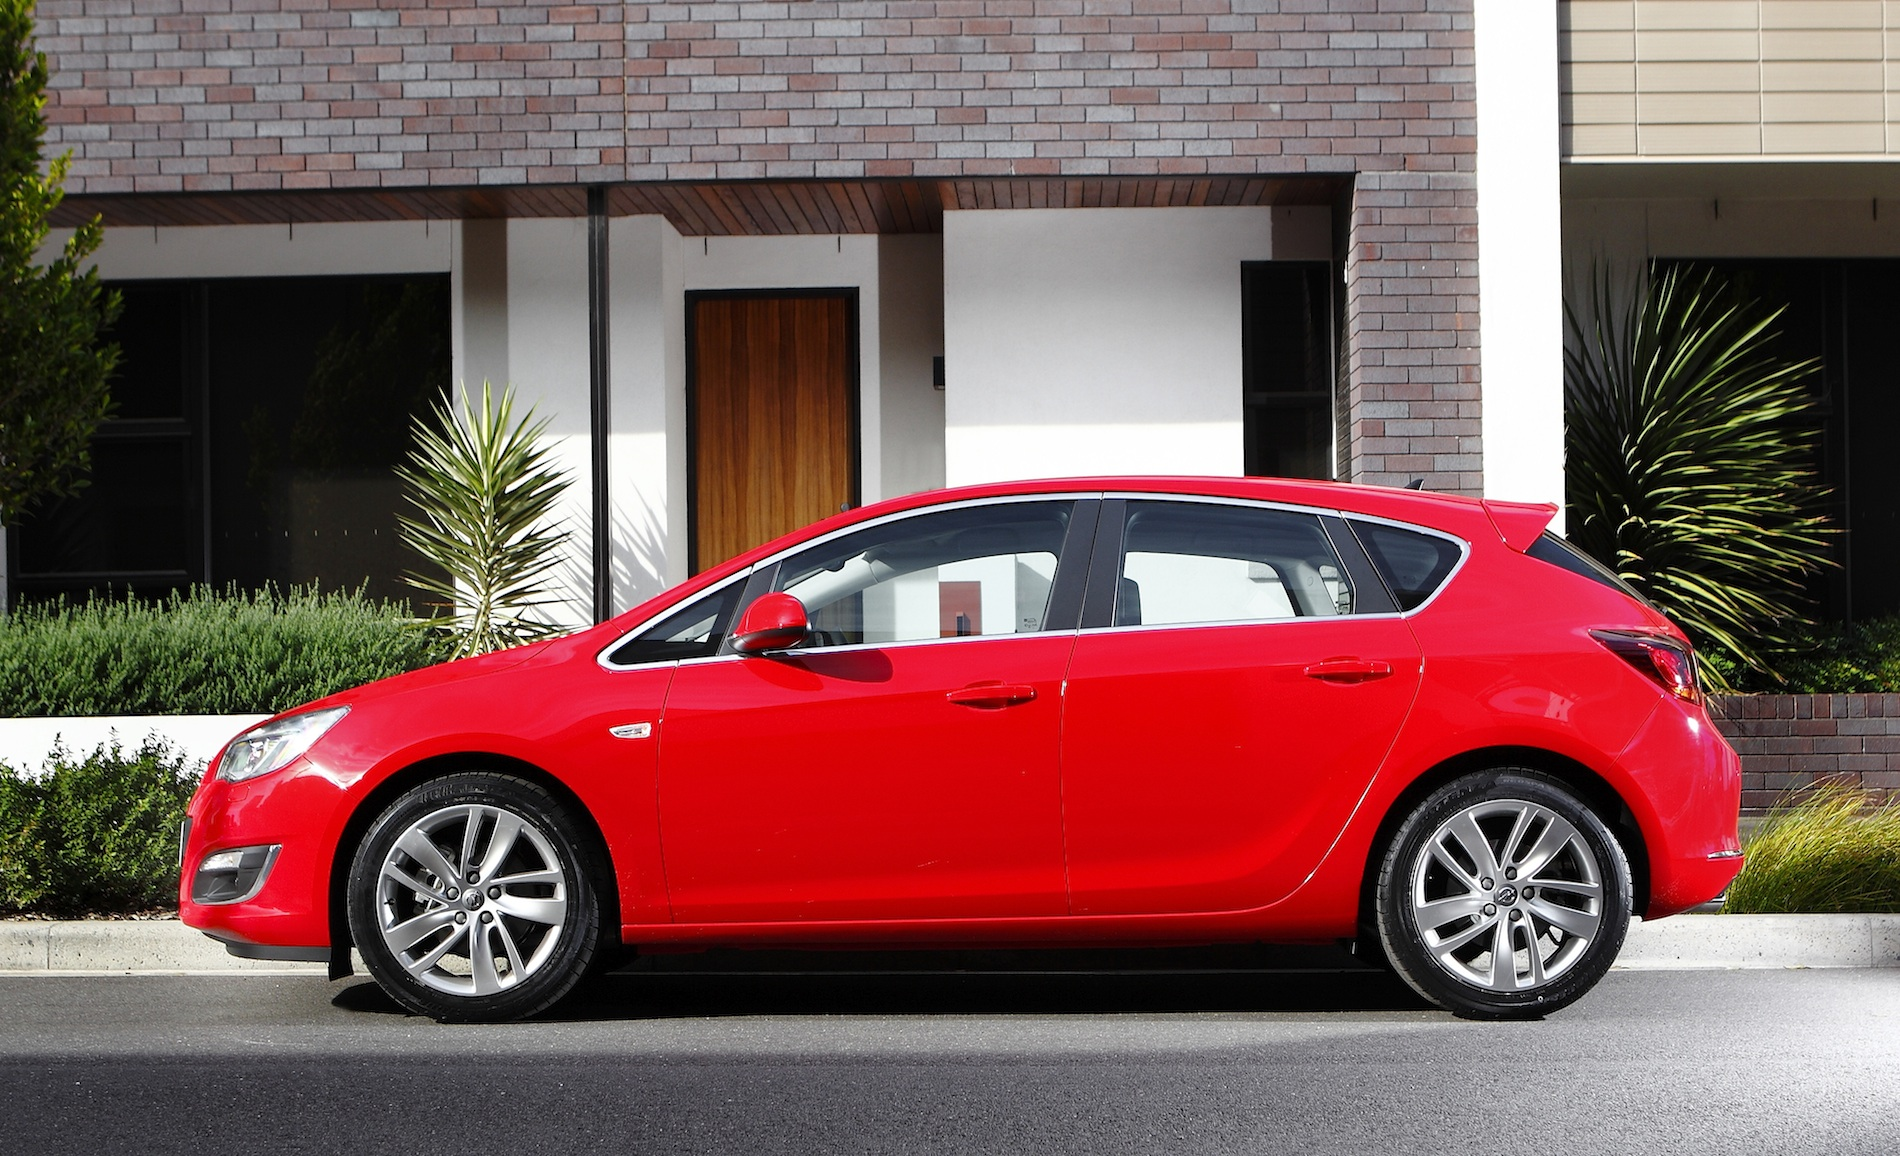 holden astra 2013 images #14